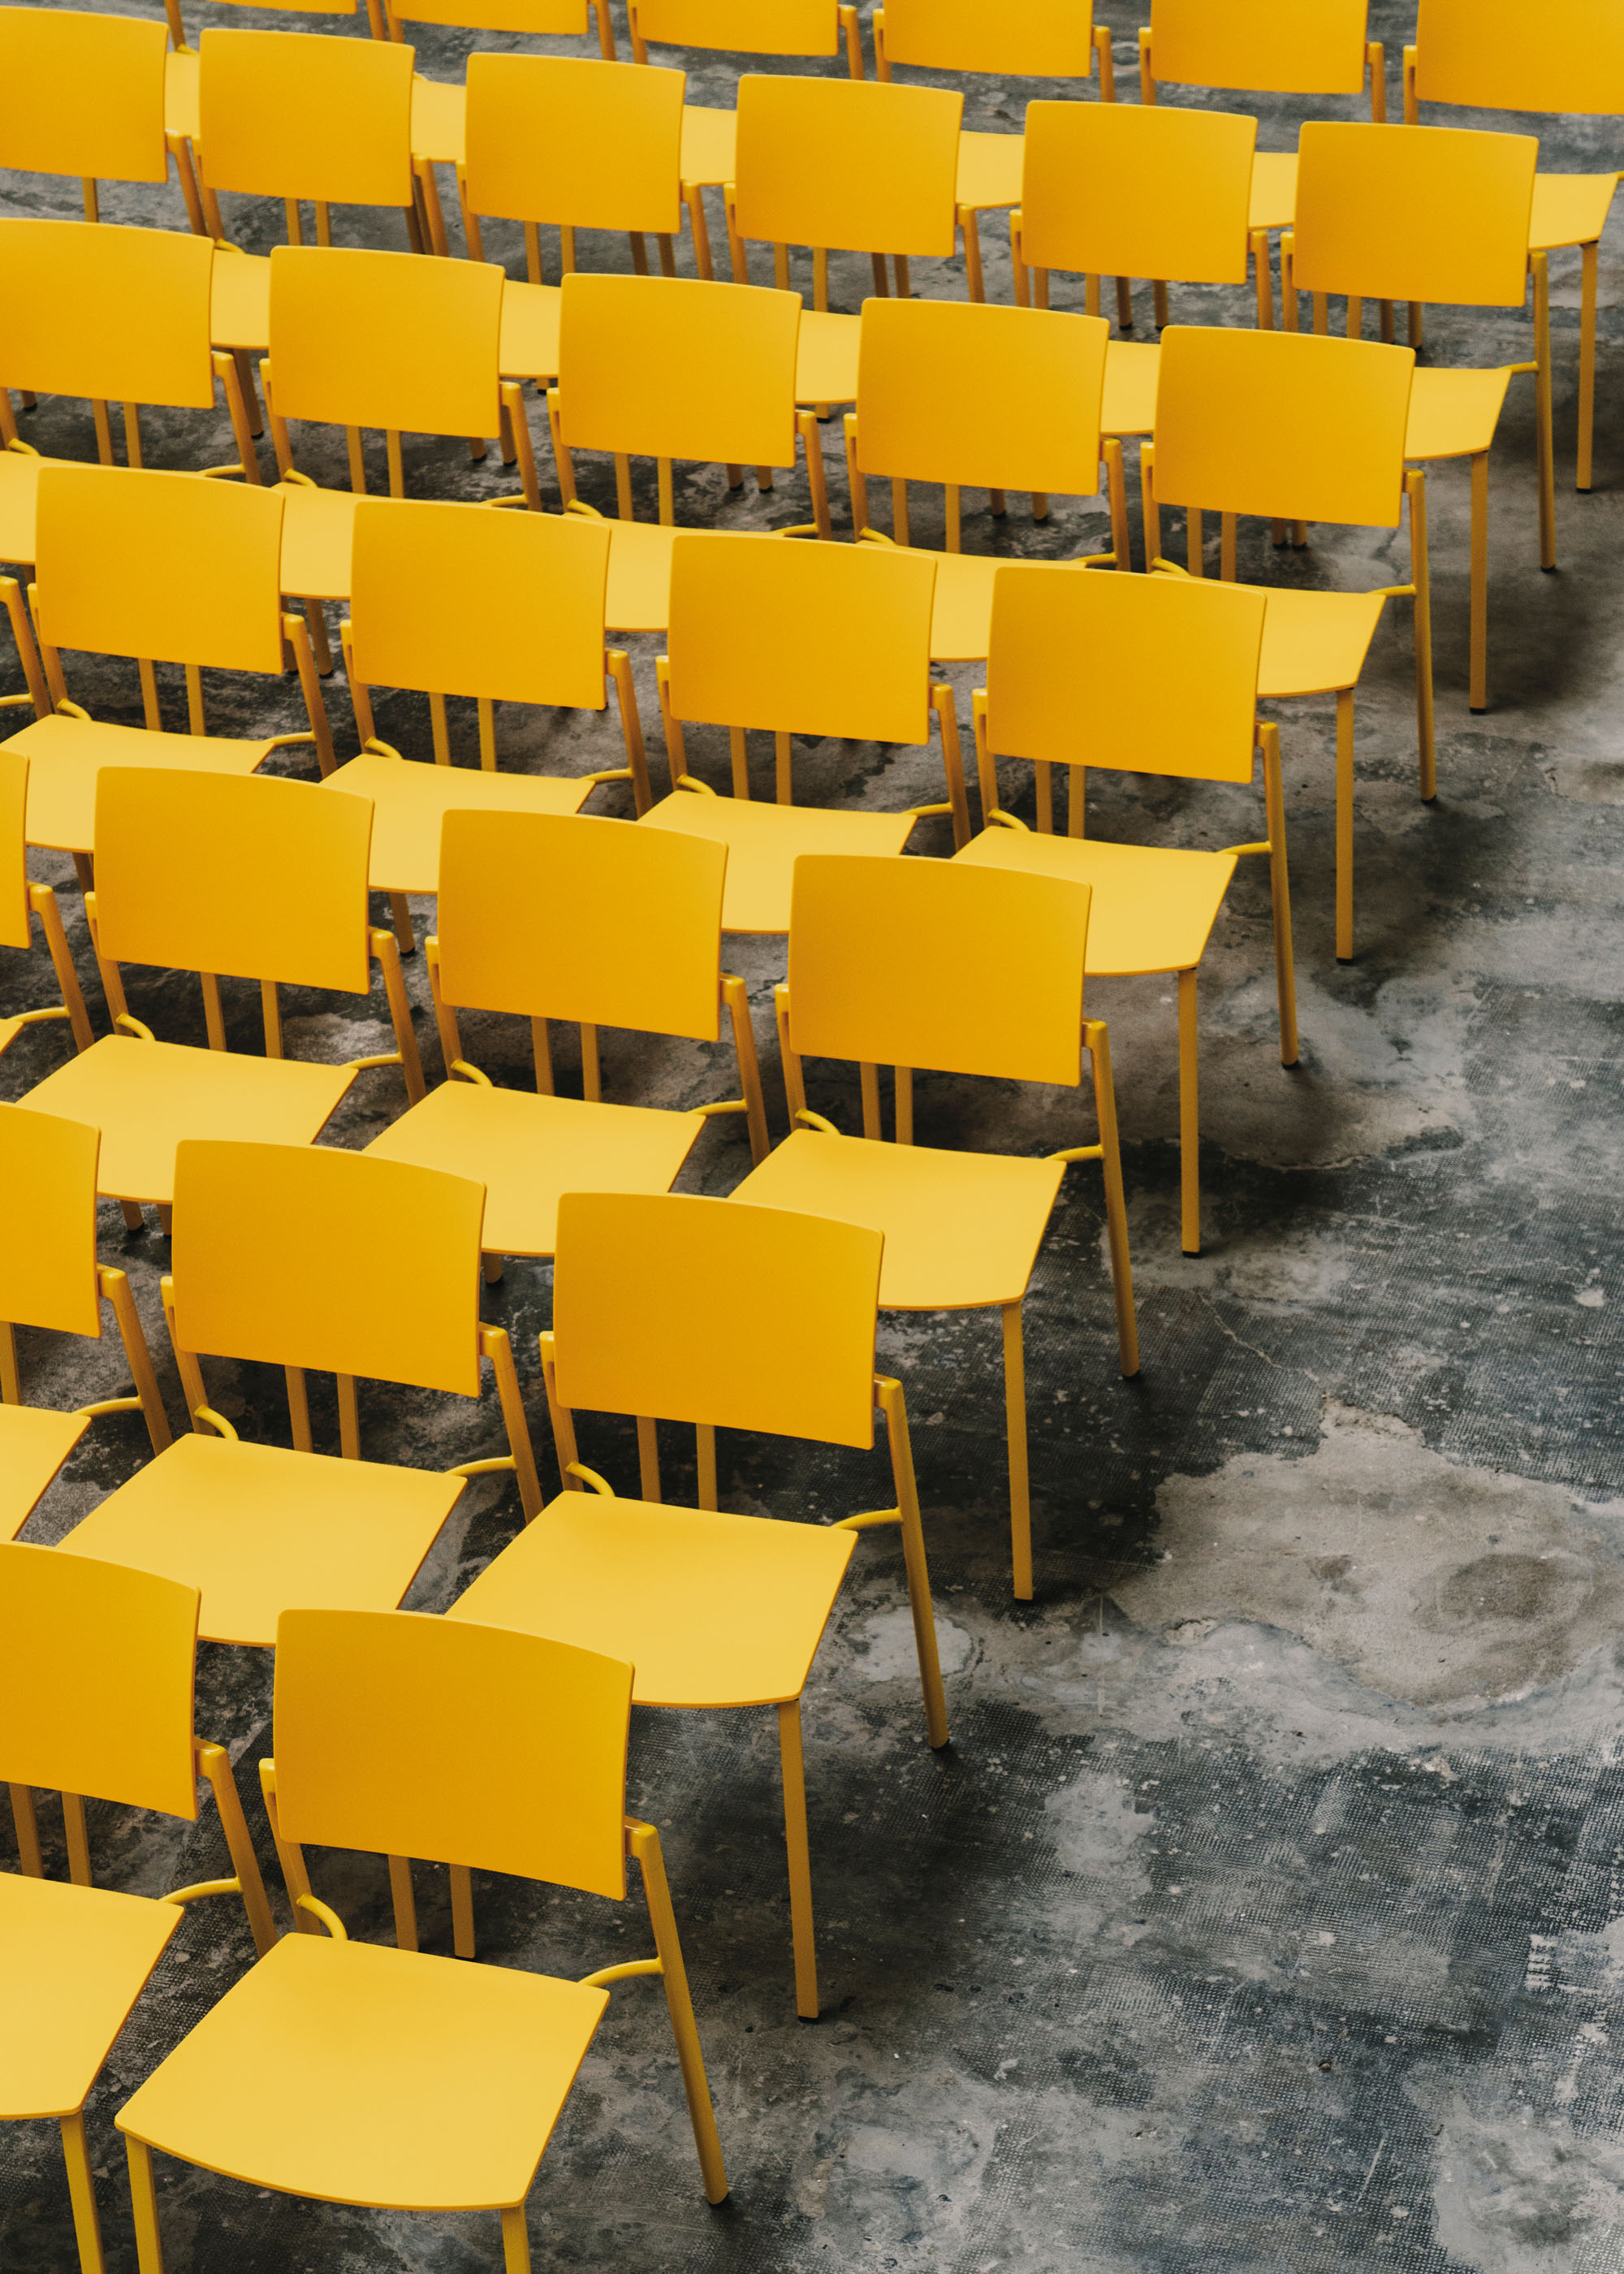 #furniture #enea #design #clase #chairs #yellow #basque #fronton